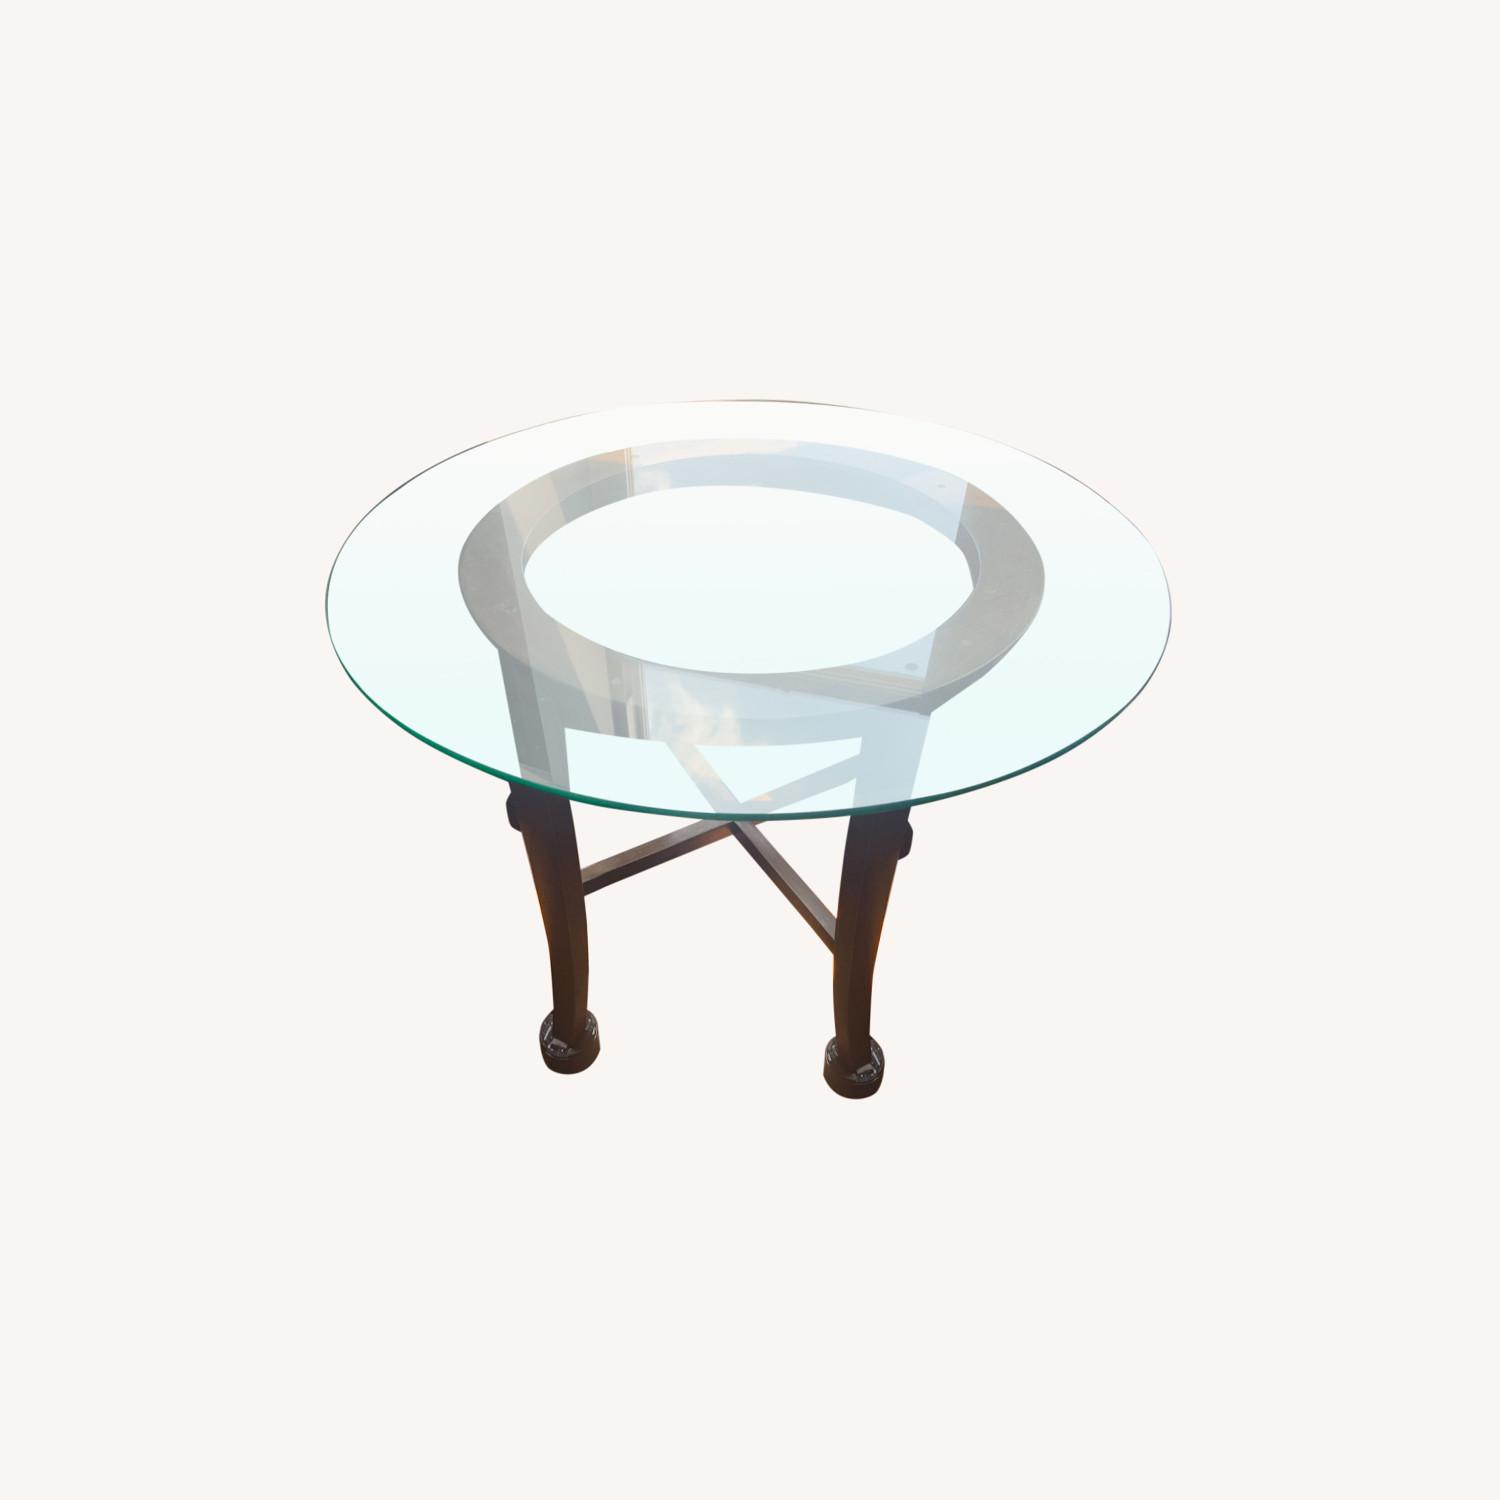 "Crate & Barrel 42"" Round Dining Table with Glass Top - image-0"